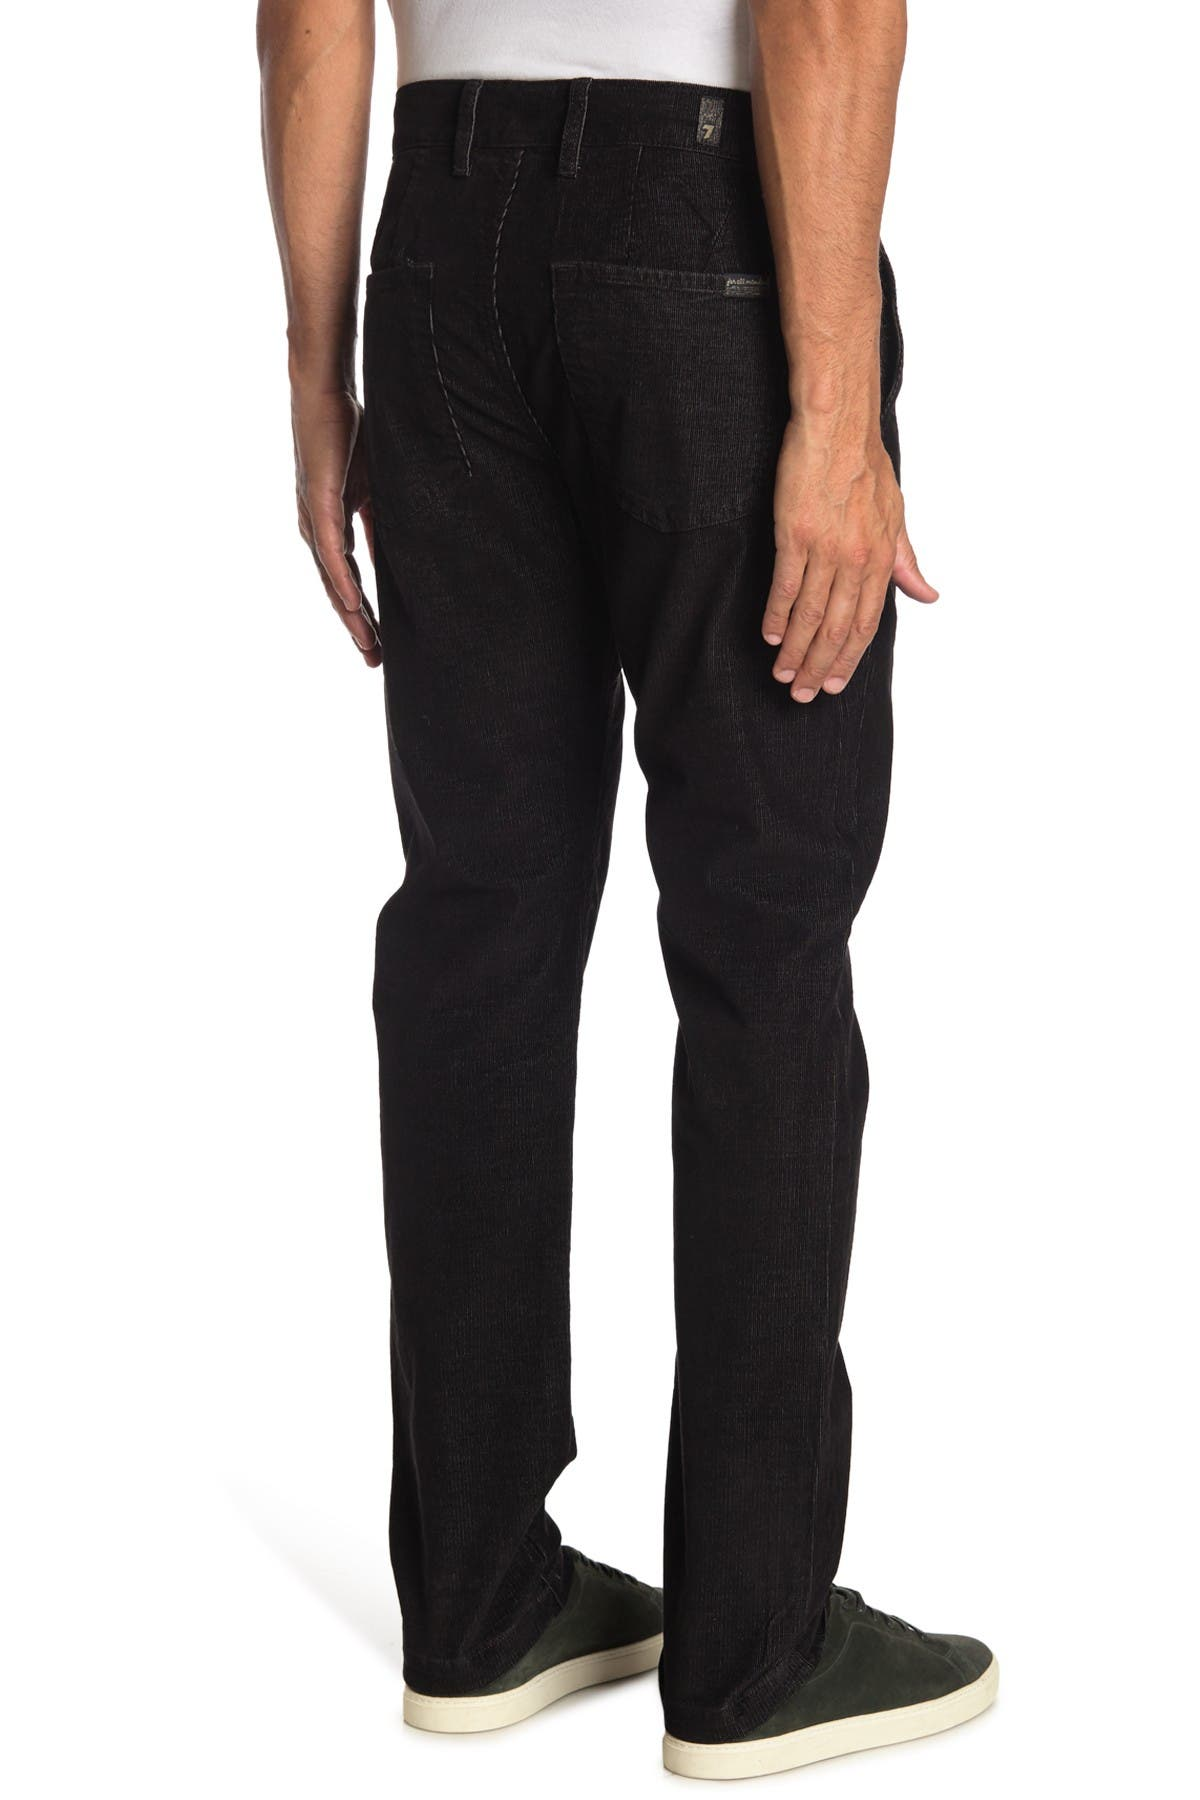 Image of 7 For All Mankind Corduroy Chino Jeans